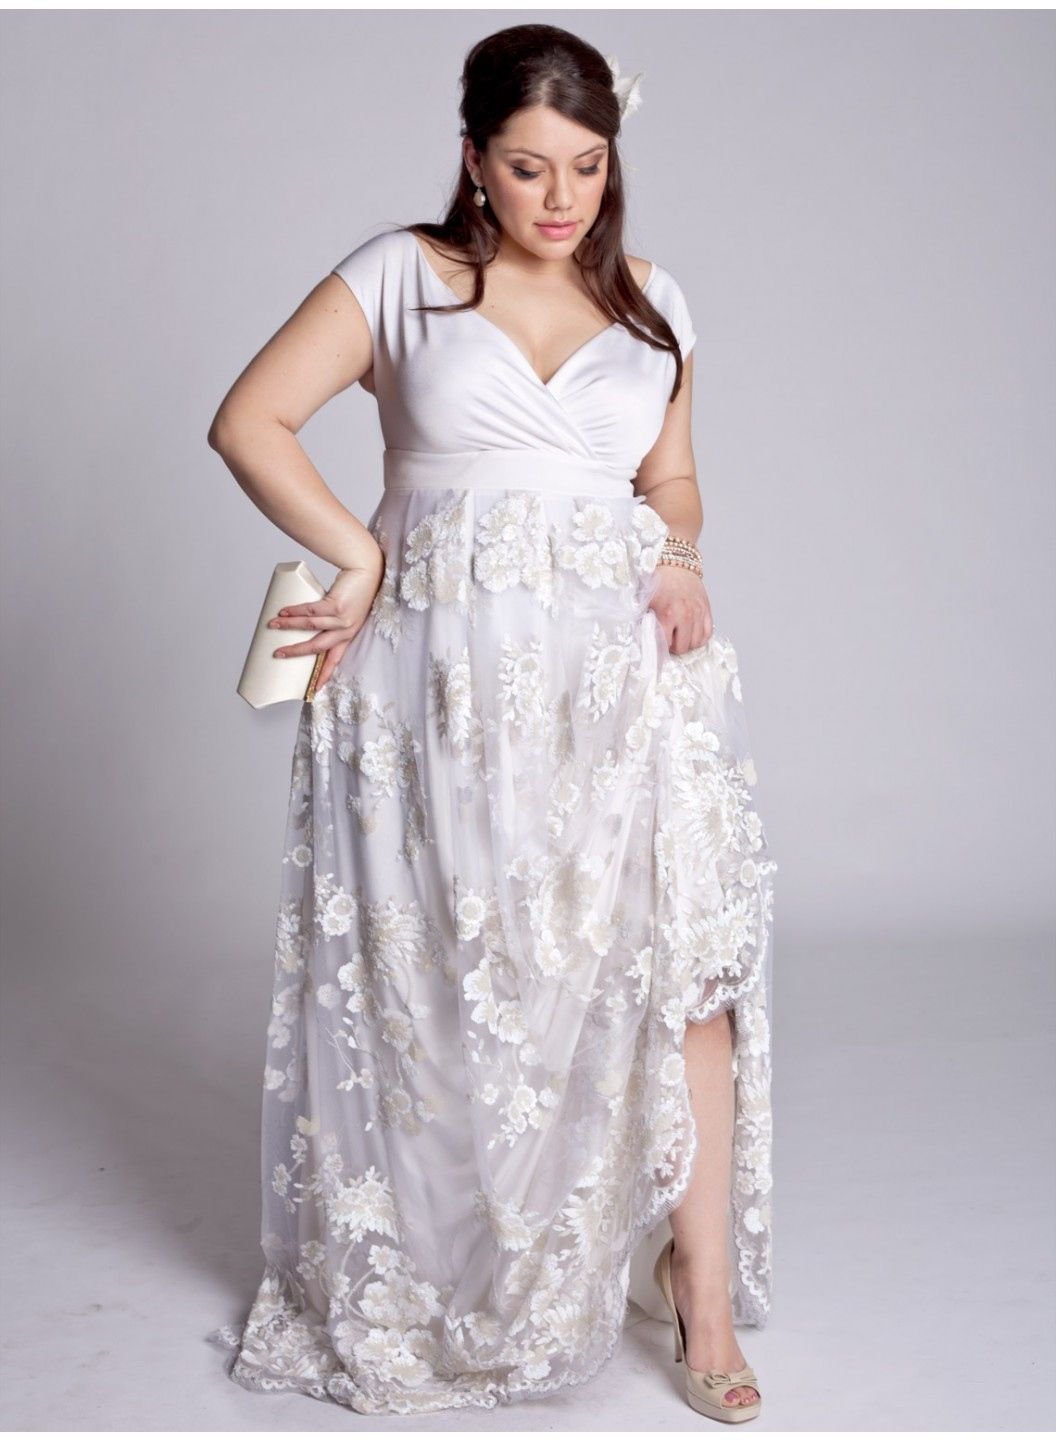 Looking for Dress for Wedding - Wedding Dresses for Cheap Check more ...